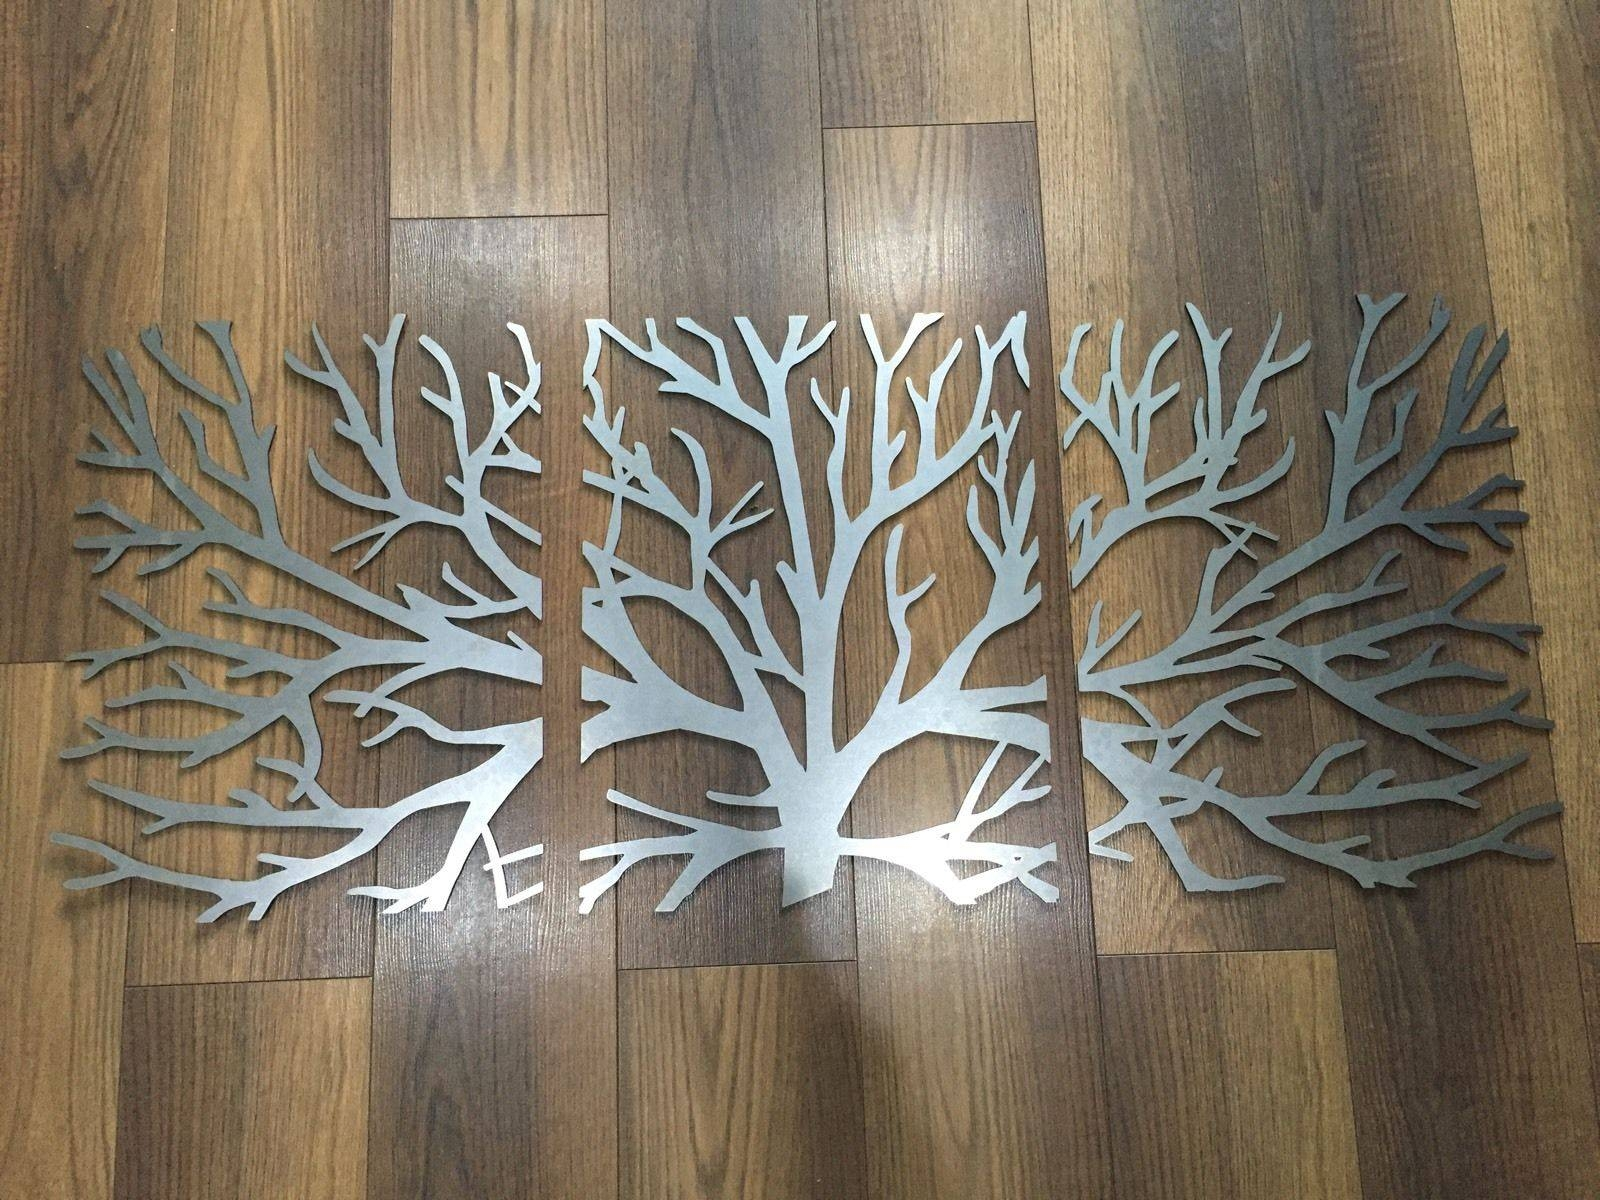 Wall Art Designs: Metal Wall Art Decor And Sculptures Outdoor Pertaining To Latest Metal Tree Wall Art Sculpture (View 20 of 20)